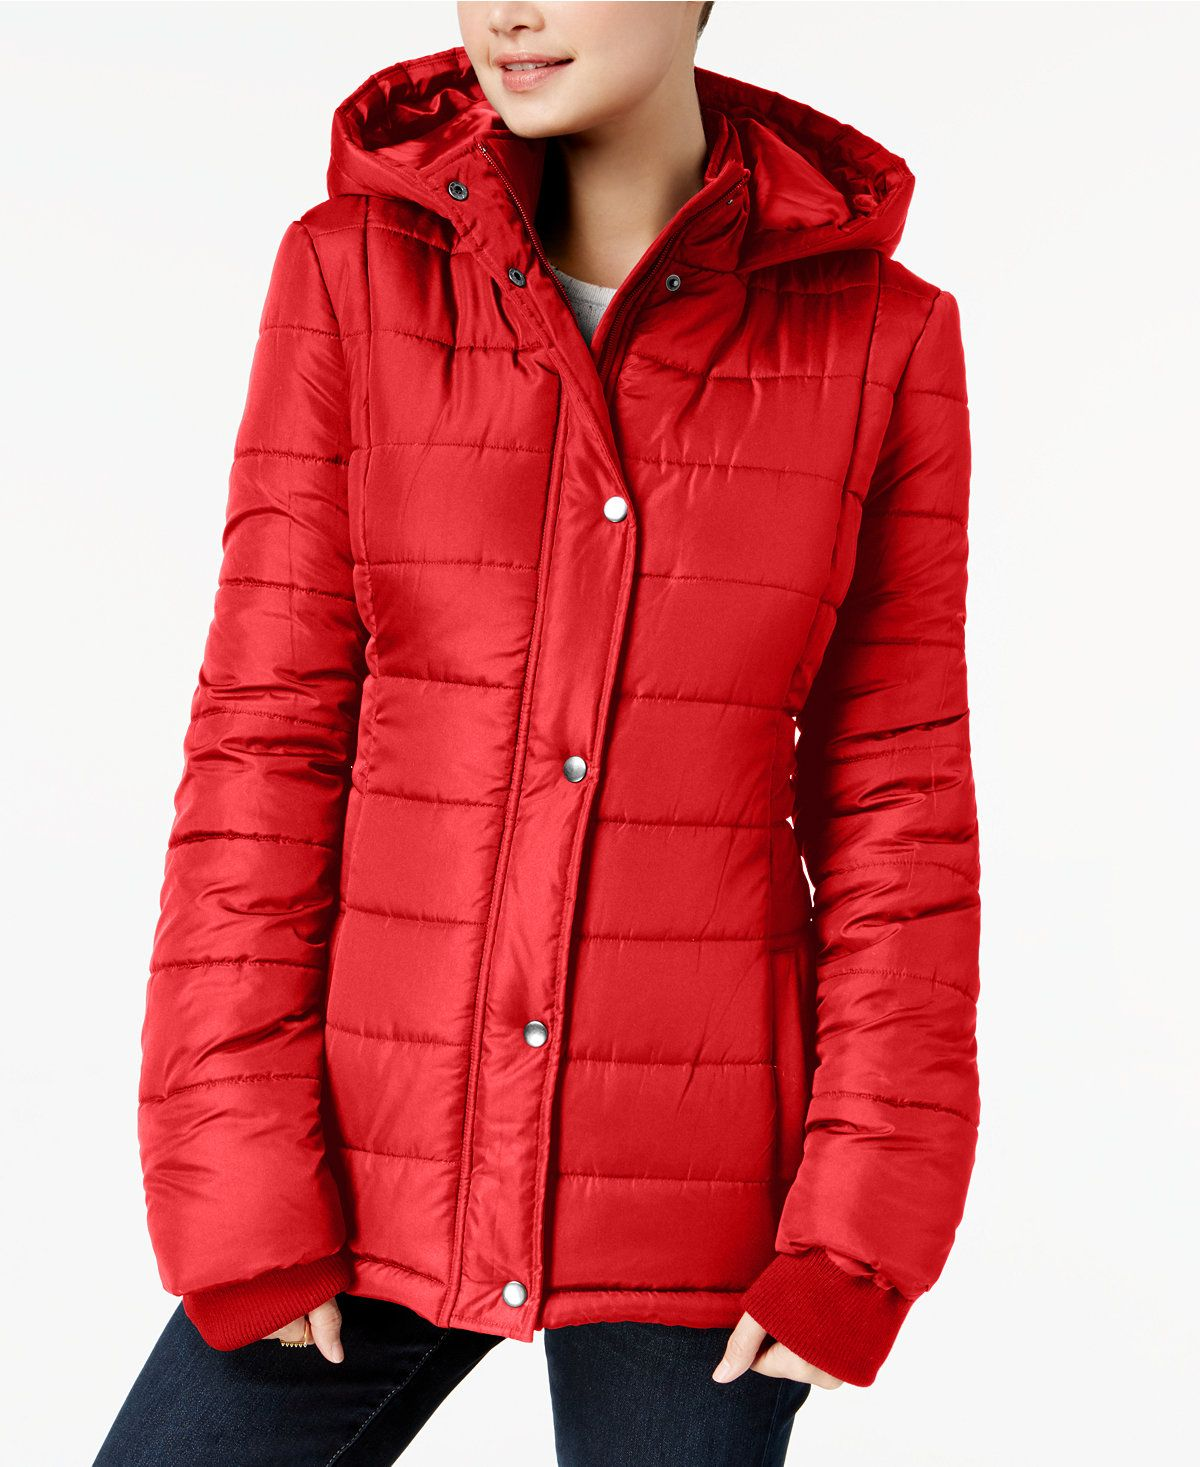 Rampage Juniors Hooded Puffer Coat Created For Macy S Juniors Coats Macy S Puffer Coat Red Puffer Coat Red Hooded Coat [ 1467 x 1200 Pixel ]